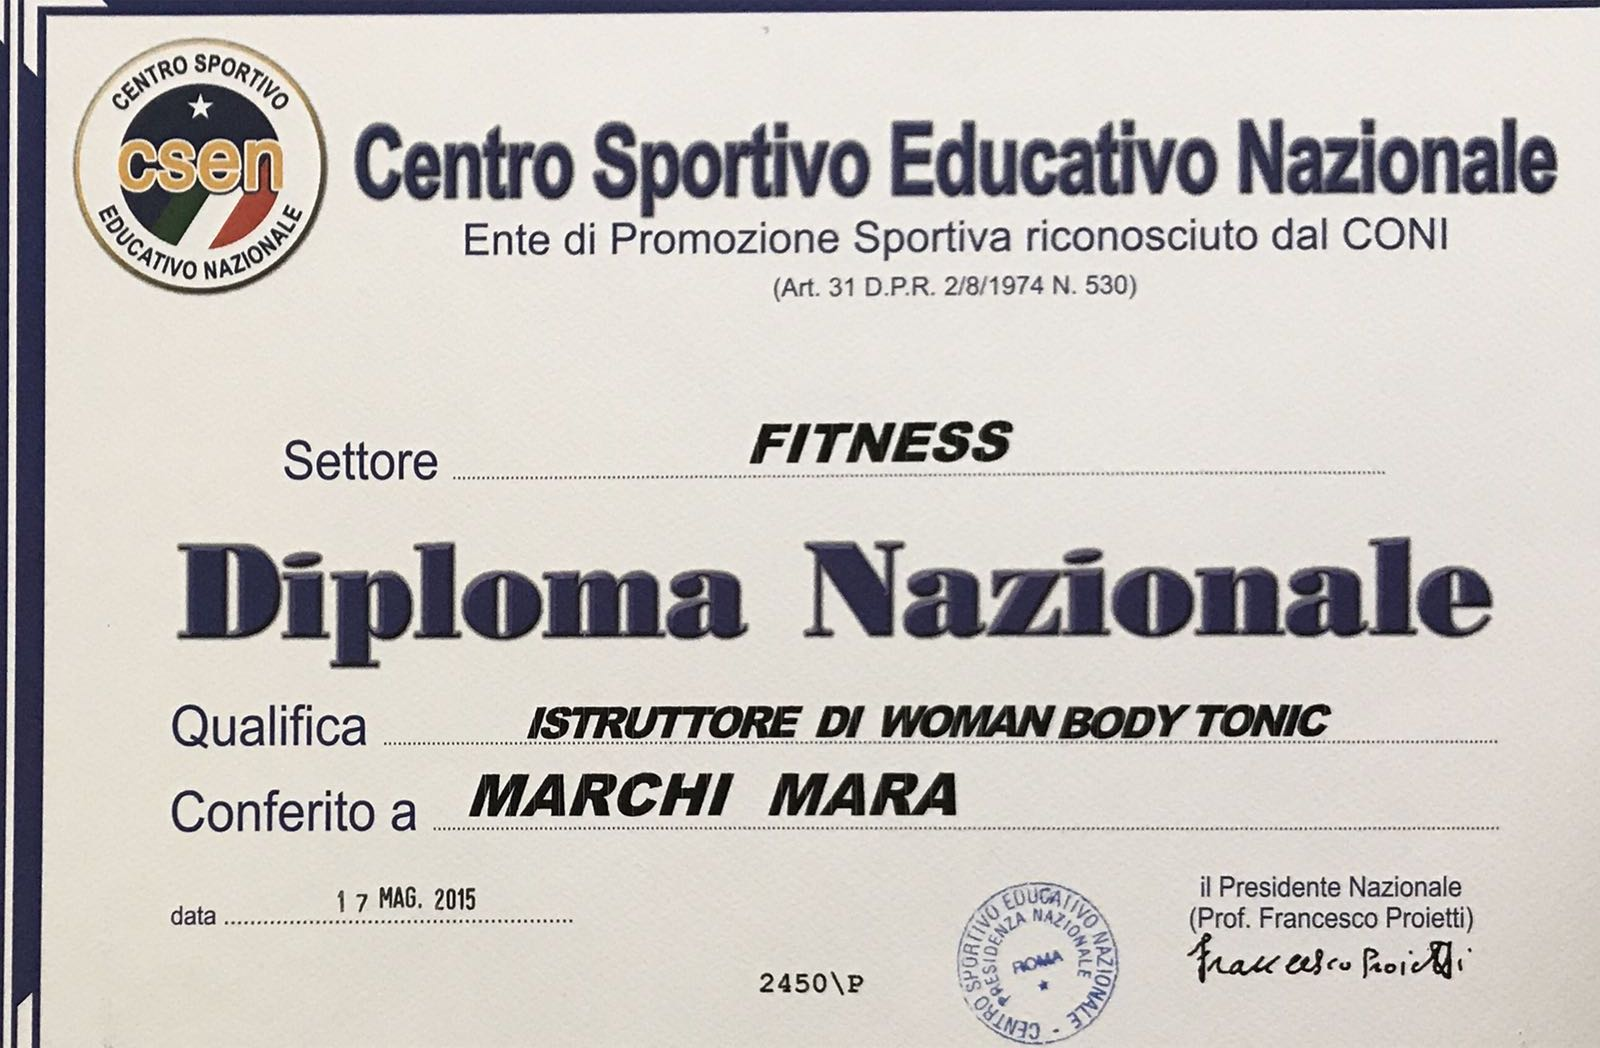 Istruttore di woman body tonic